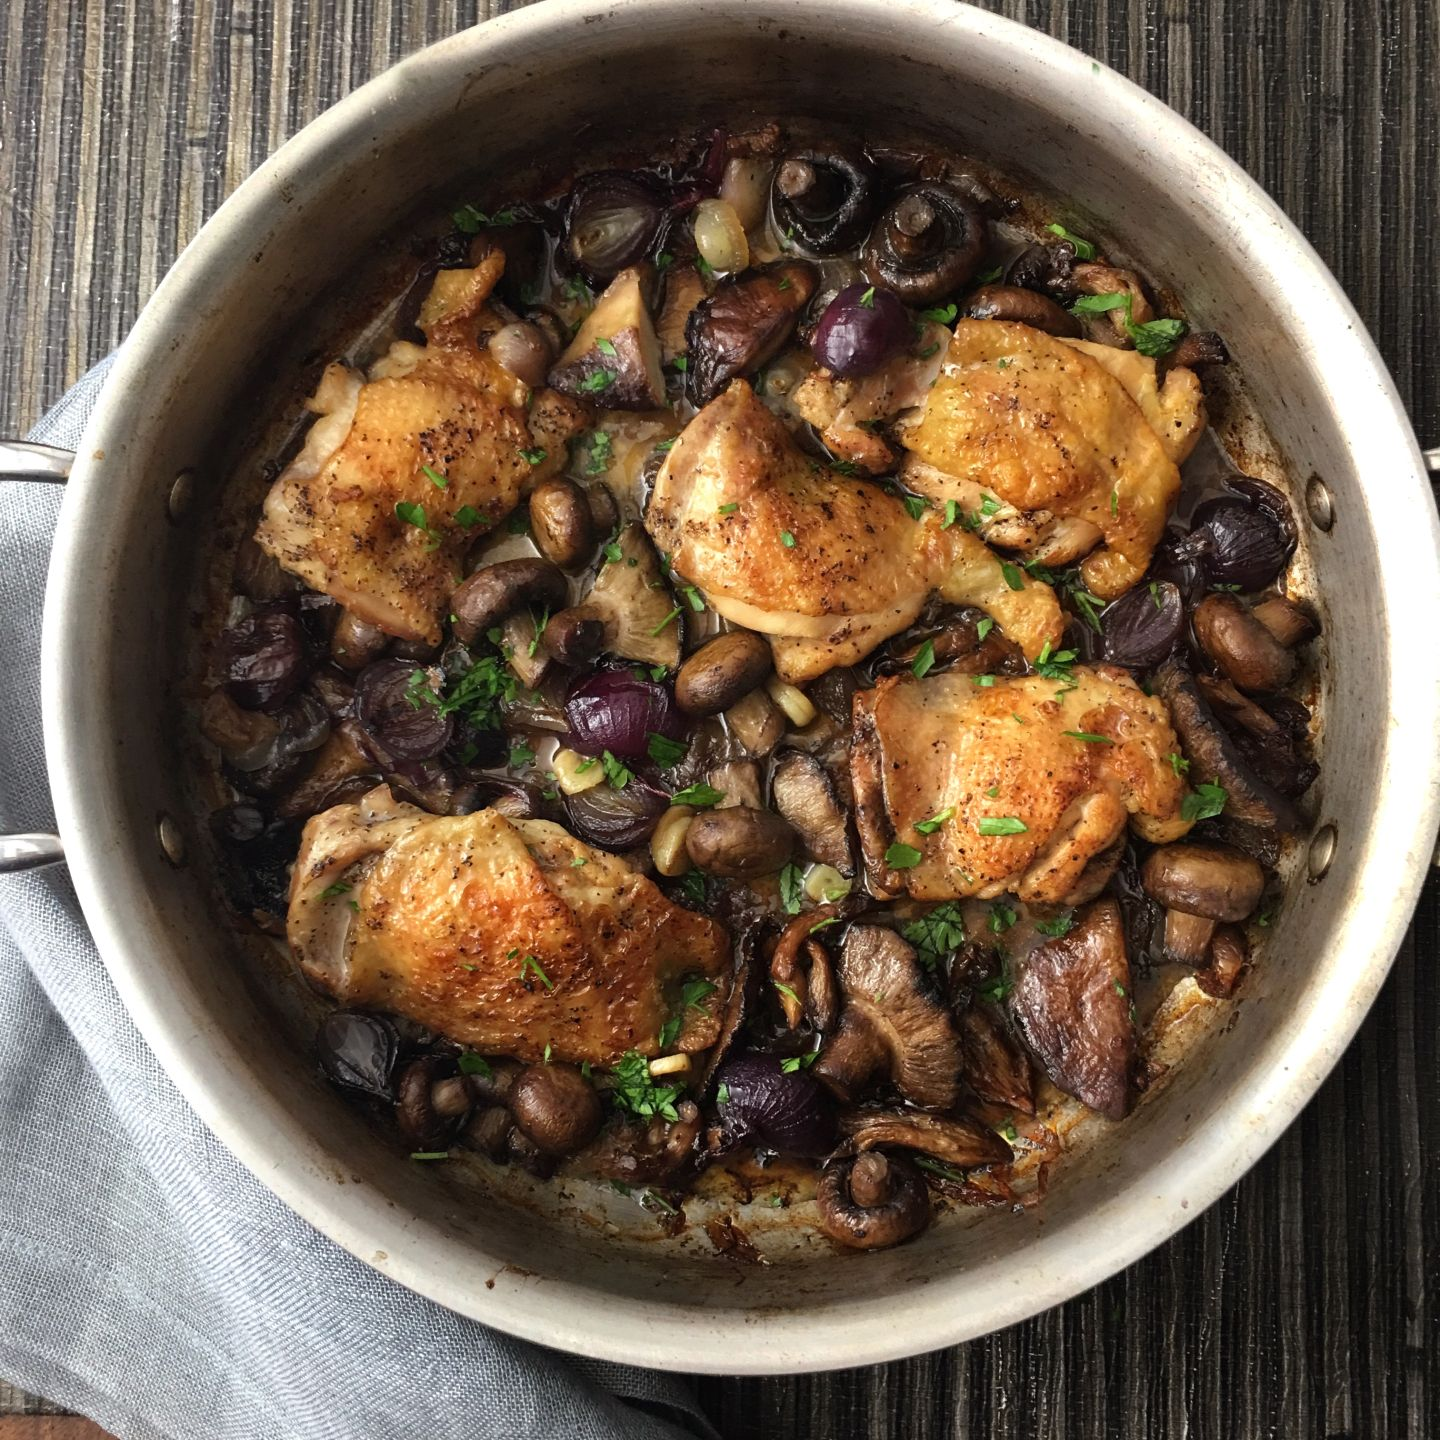 Chicken thighs with mushrooms and shallots inspiration for chicken thighs with mushrooms and shallots inspiration for everyday food made marvelous forumfinder Choice Image